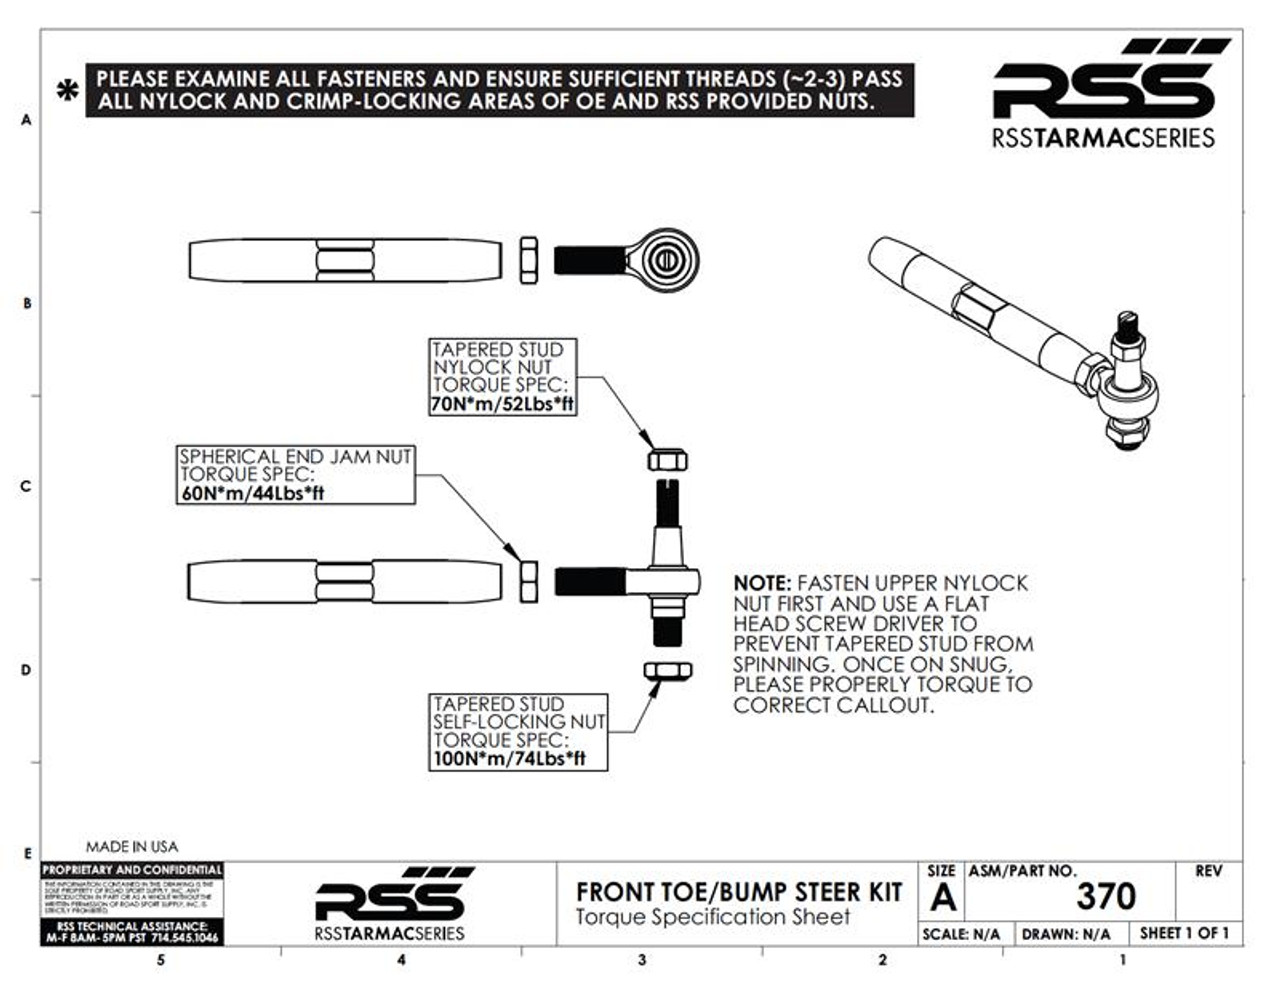 The RSS Adjustable Front Toe/Bump Steer XL Kit is designed for Porsche models that have been lowered. This kit will help minimize the suspension geometry change in the front of the vehicle. Allows for bump steer adjustment. Improves handling, feedback and control. AVAILABLE FOR ALL PORSCHE® 981, 982, GT4, 991 INCLUDING TURBO & GT3/GT3RS.